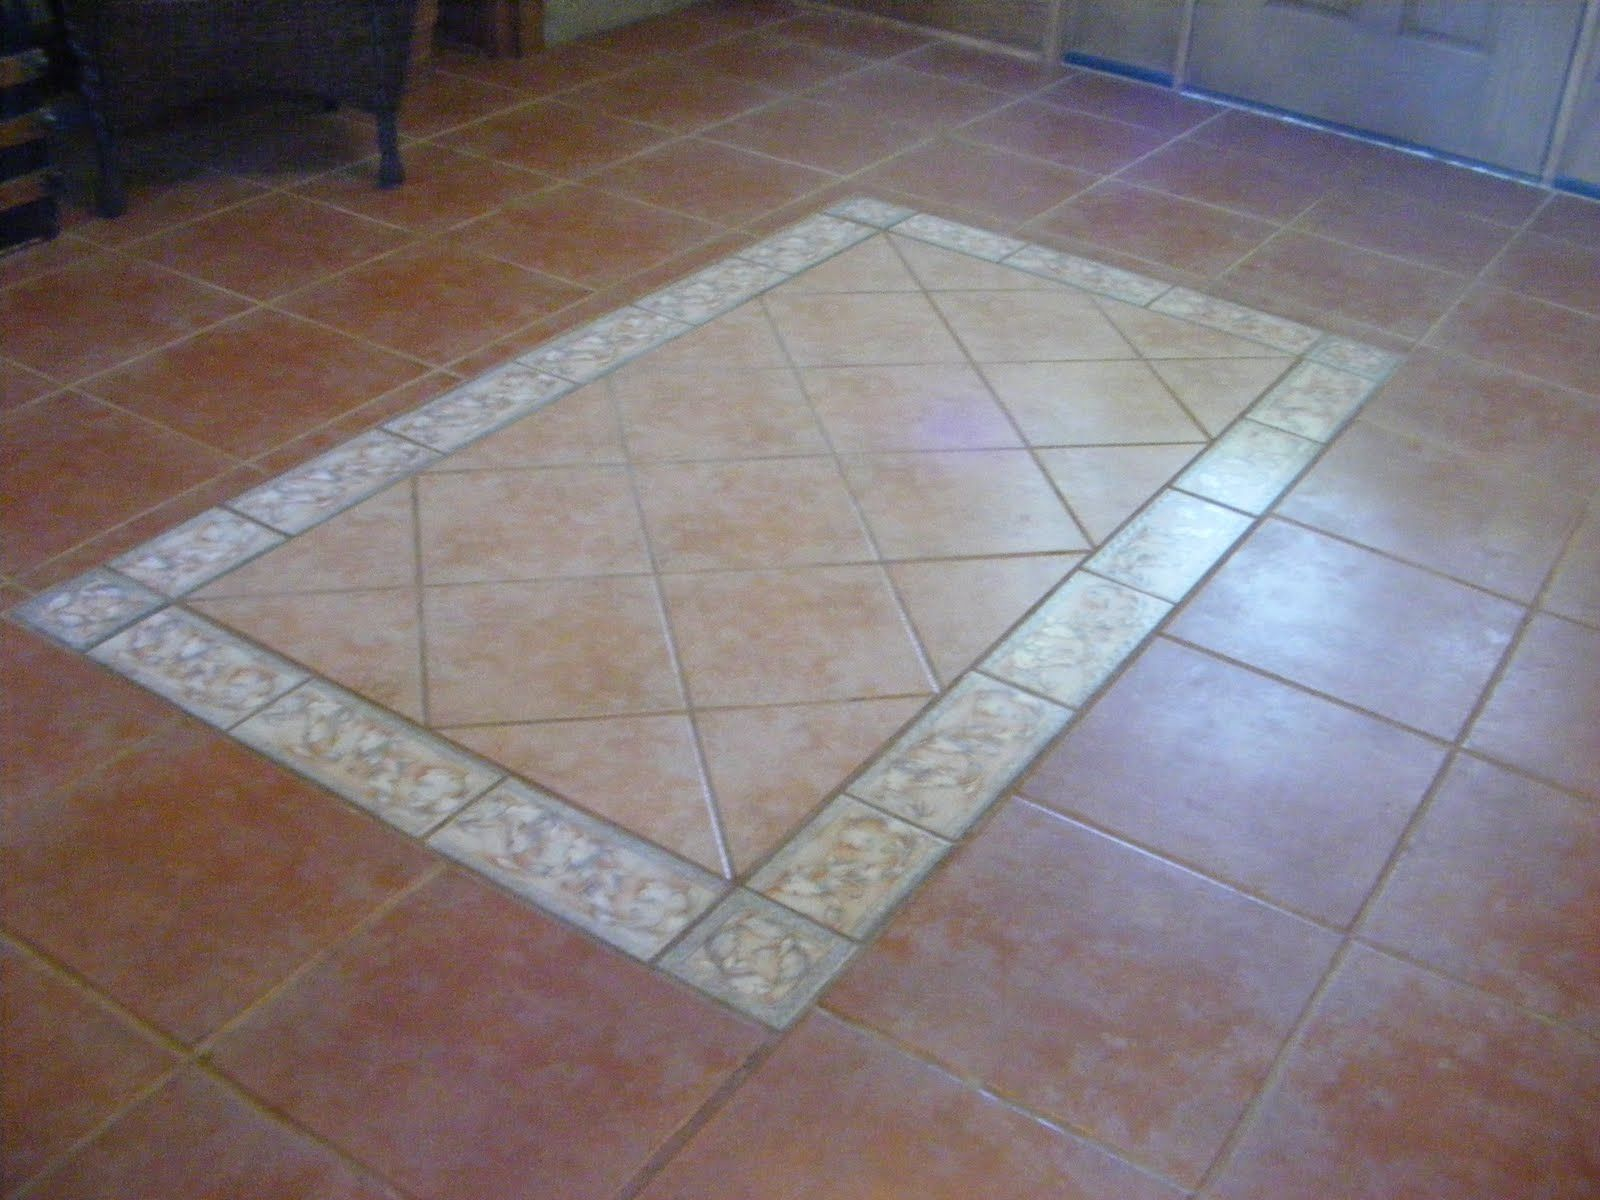 tile flooring designs ideas natural clay ceramic tiles with brown tile design tile countertops of awesome pictures of tile floor patterns design from - Tile Floor Design Ideas